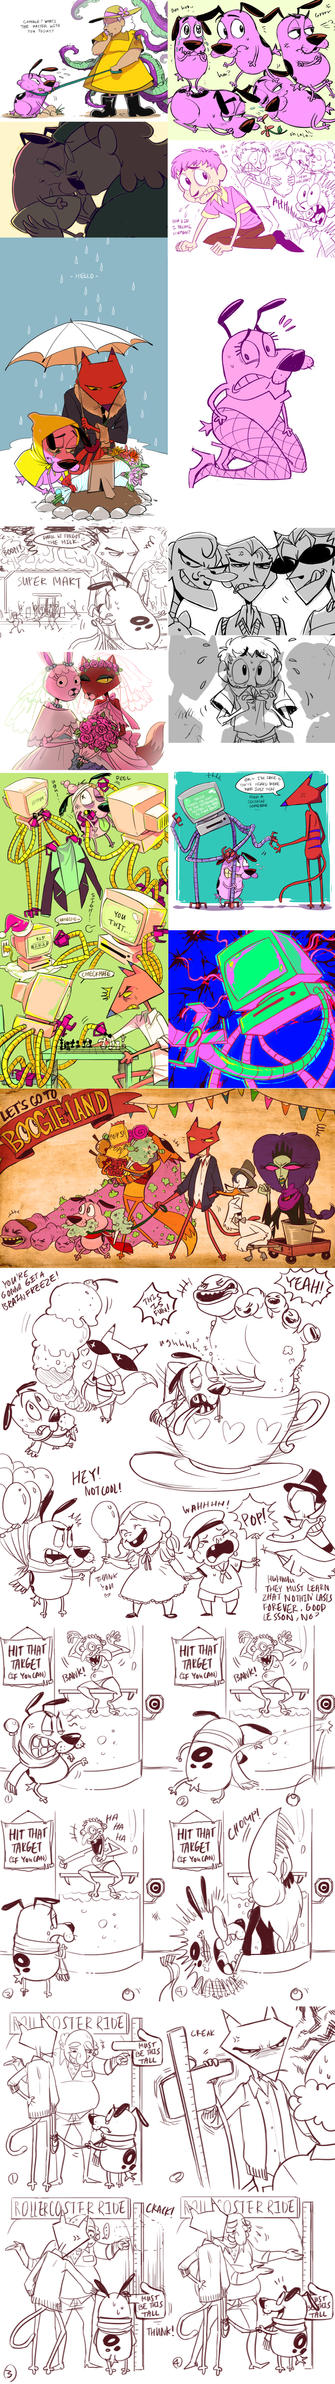 +COURAGE THE COWARDLY DOG JUNK+ by C2ndy2c1d